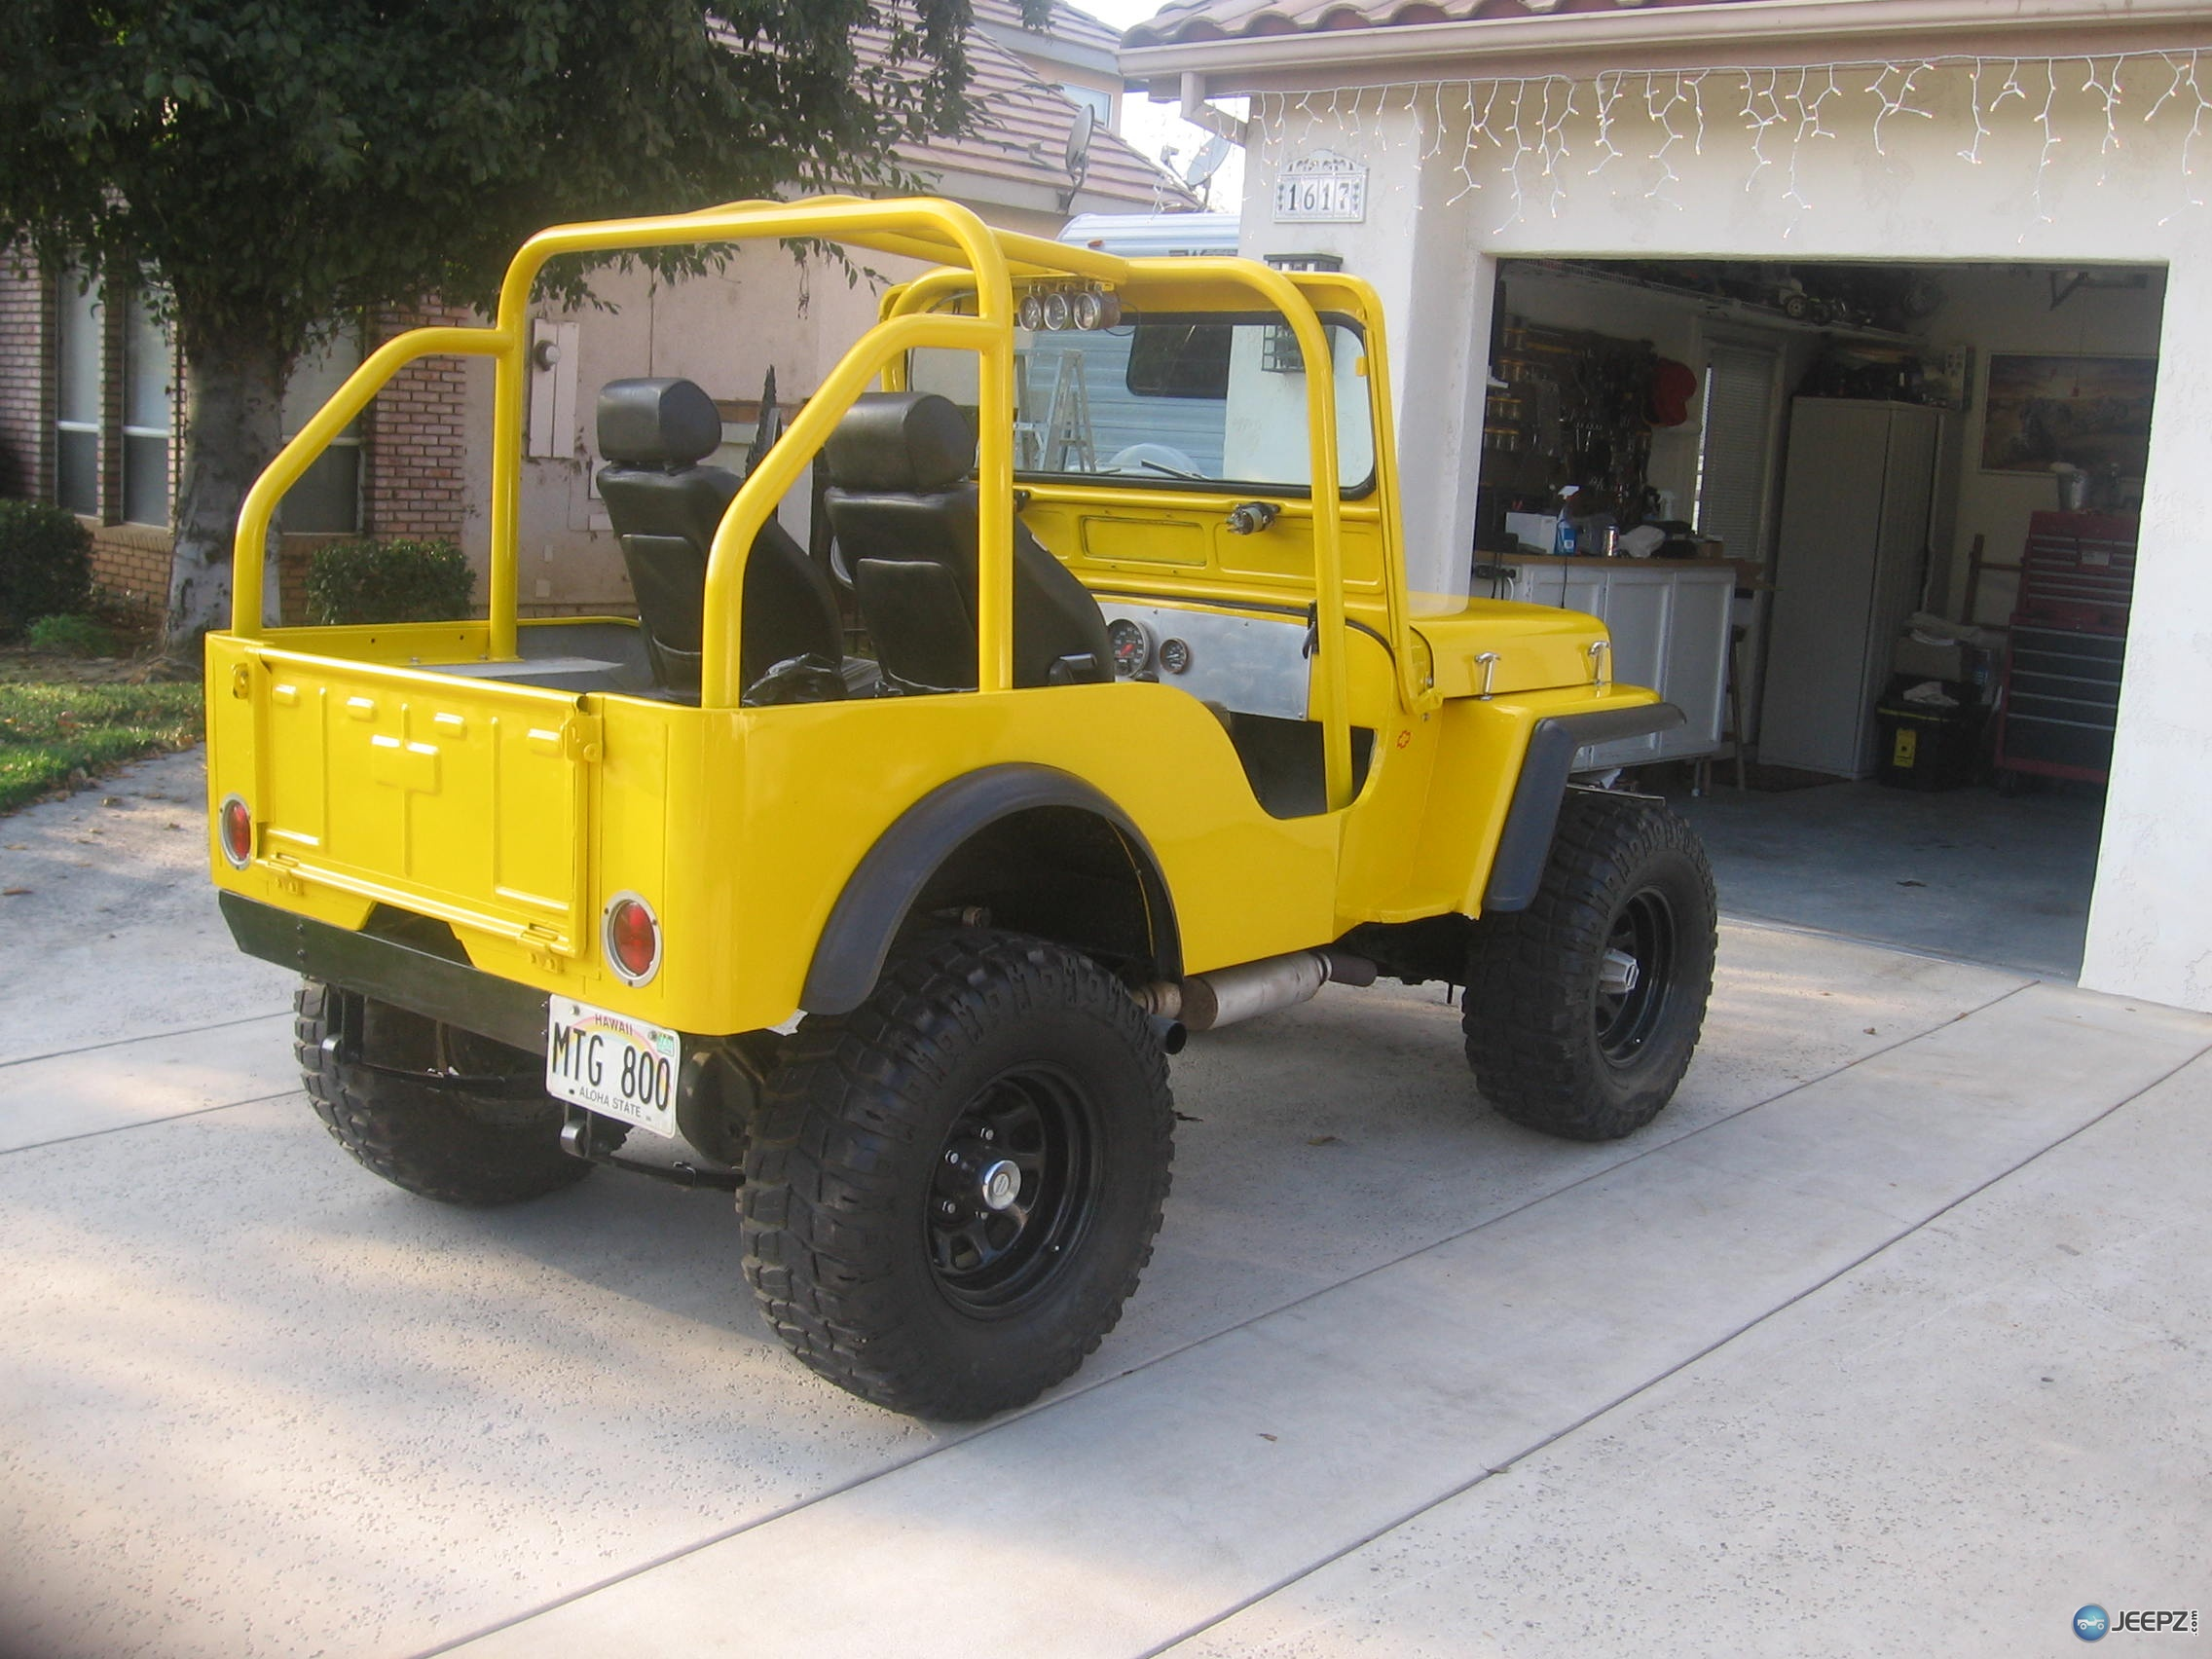 1943 Willys For Sale-willys01.jpg